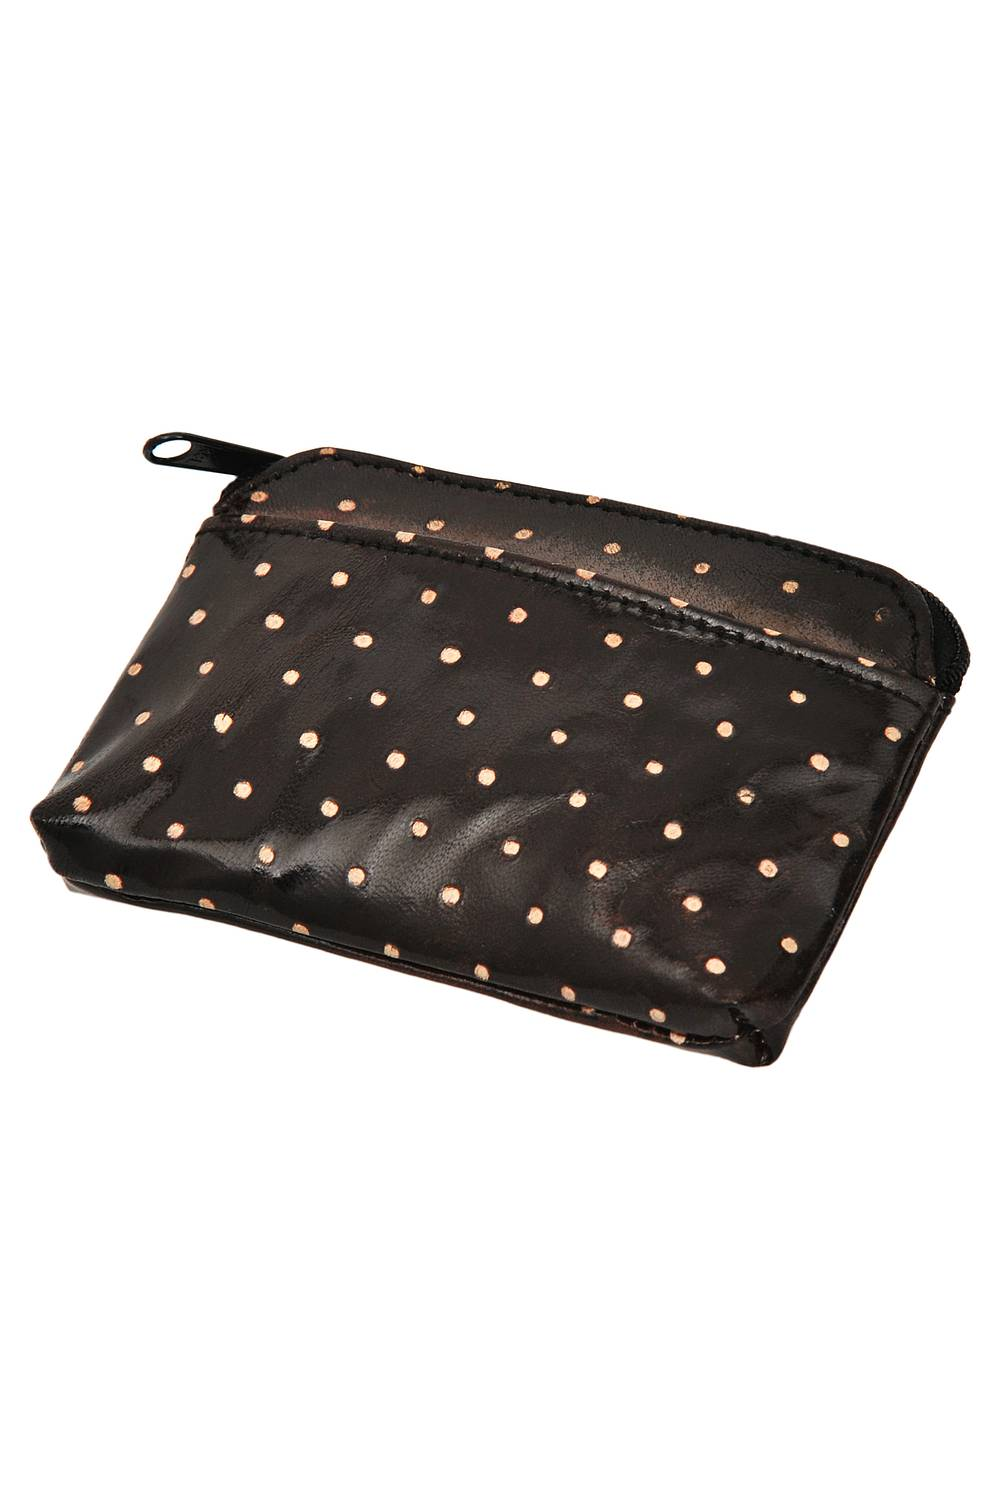 Leather purse DOTTA black